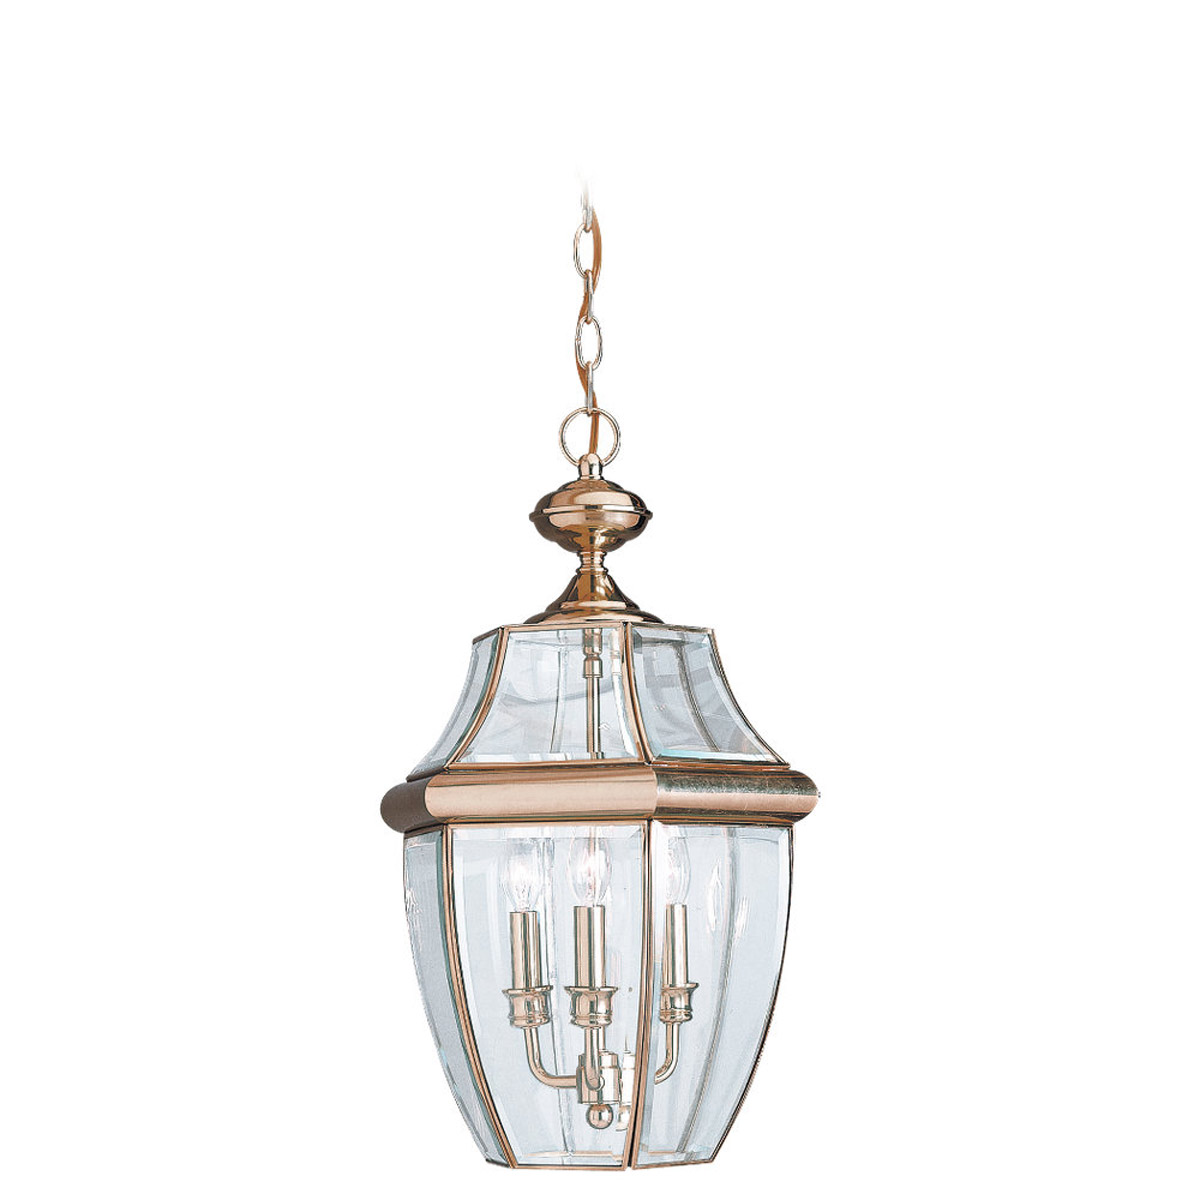 Sea Gull Lighting Lancaster 3 Light Outdoor Pendant in Polished Brass 6039-02 photo